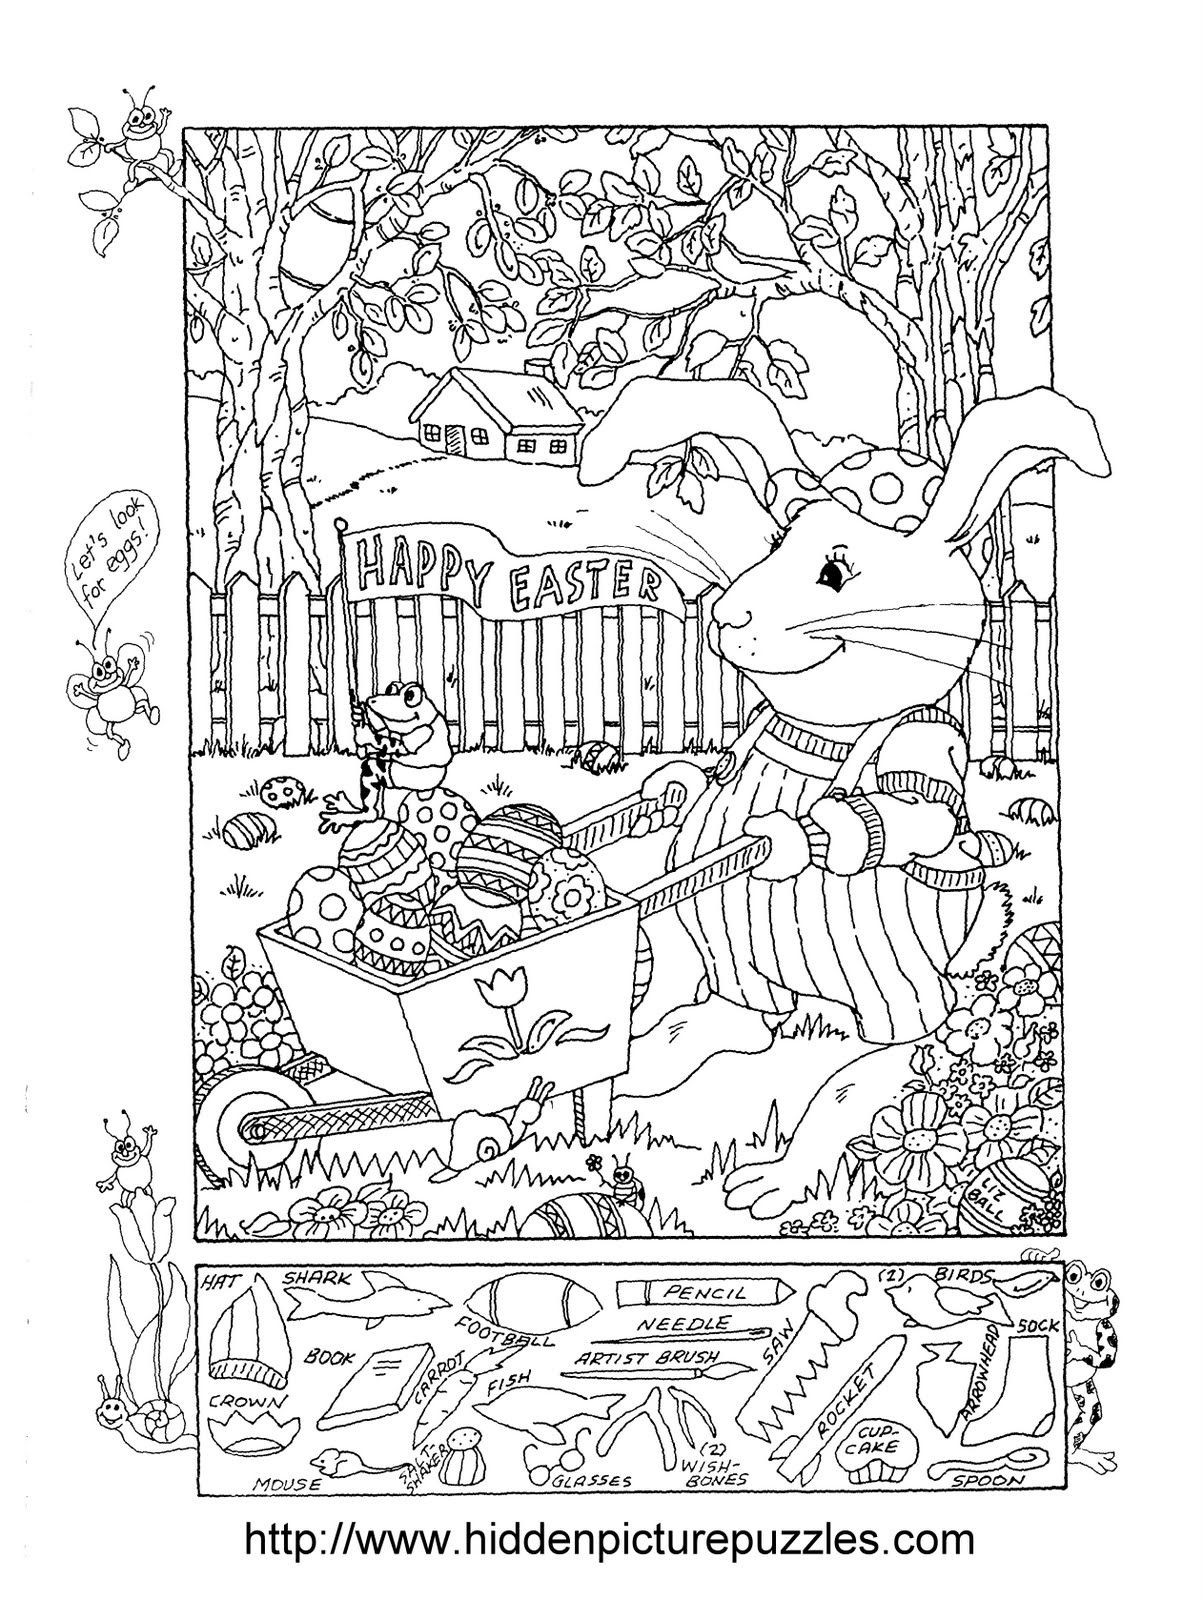 Christmas Hidden Pictures Printable Easter Hidden Puzzle and Coloring Worksheets Mixed